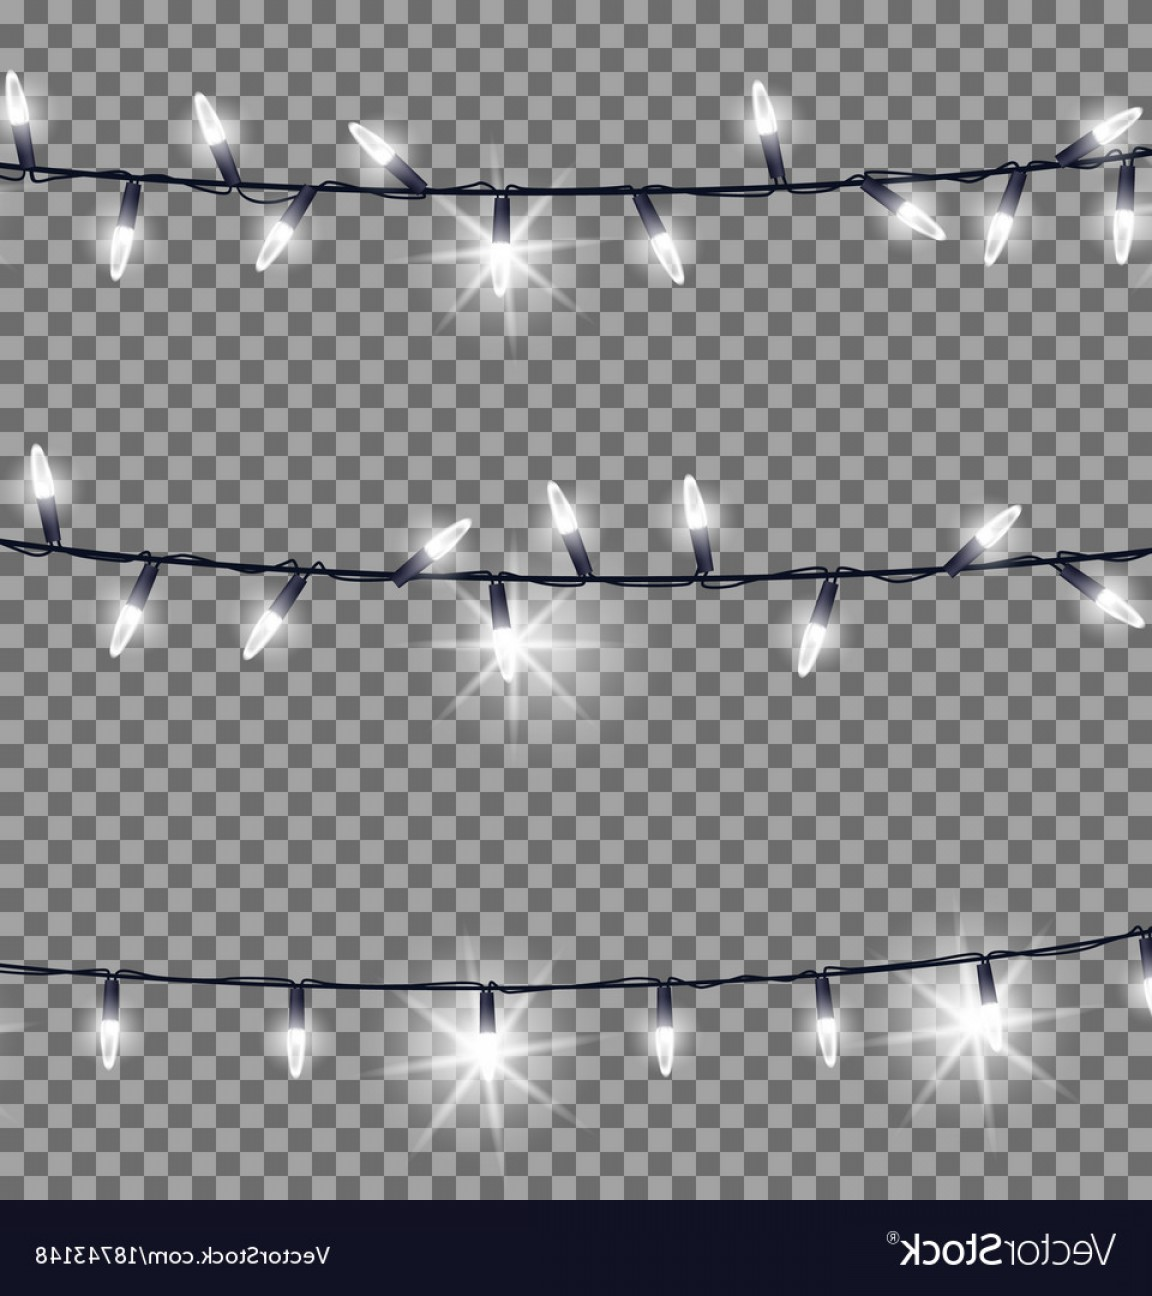 Strings Of Glowing Christmas Lights Vector.